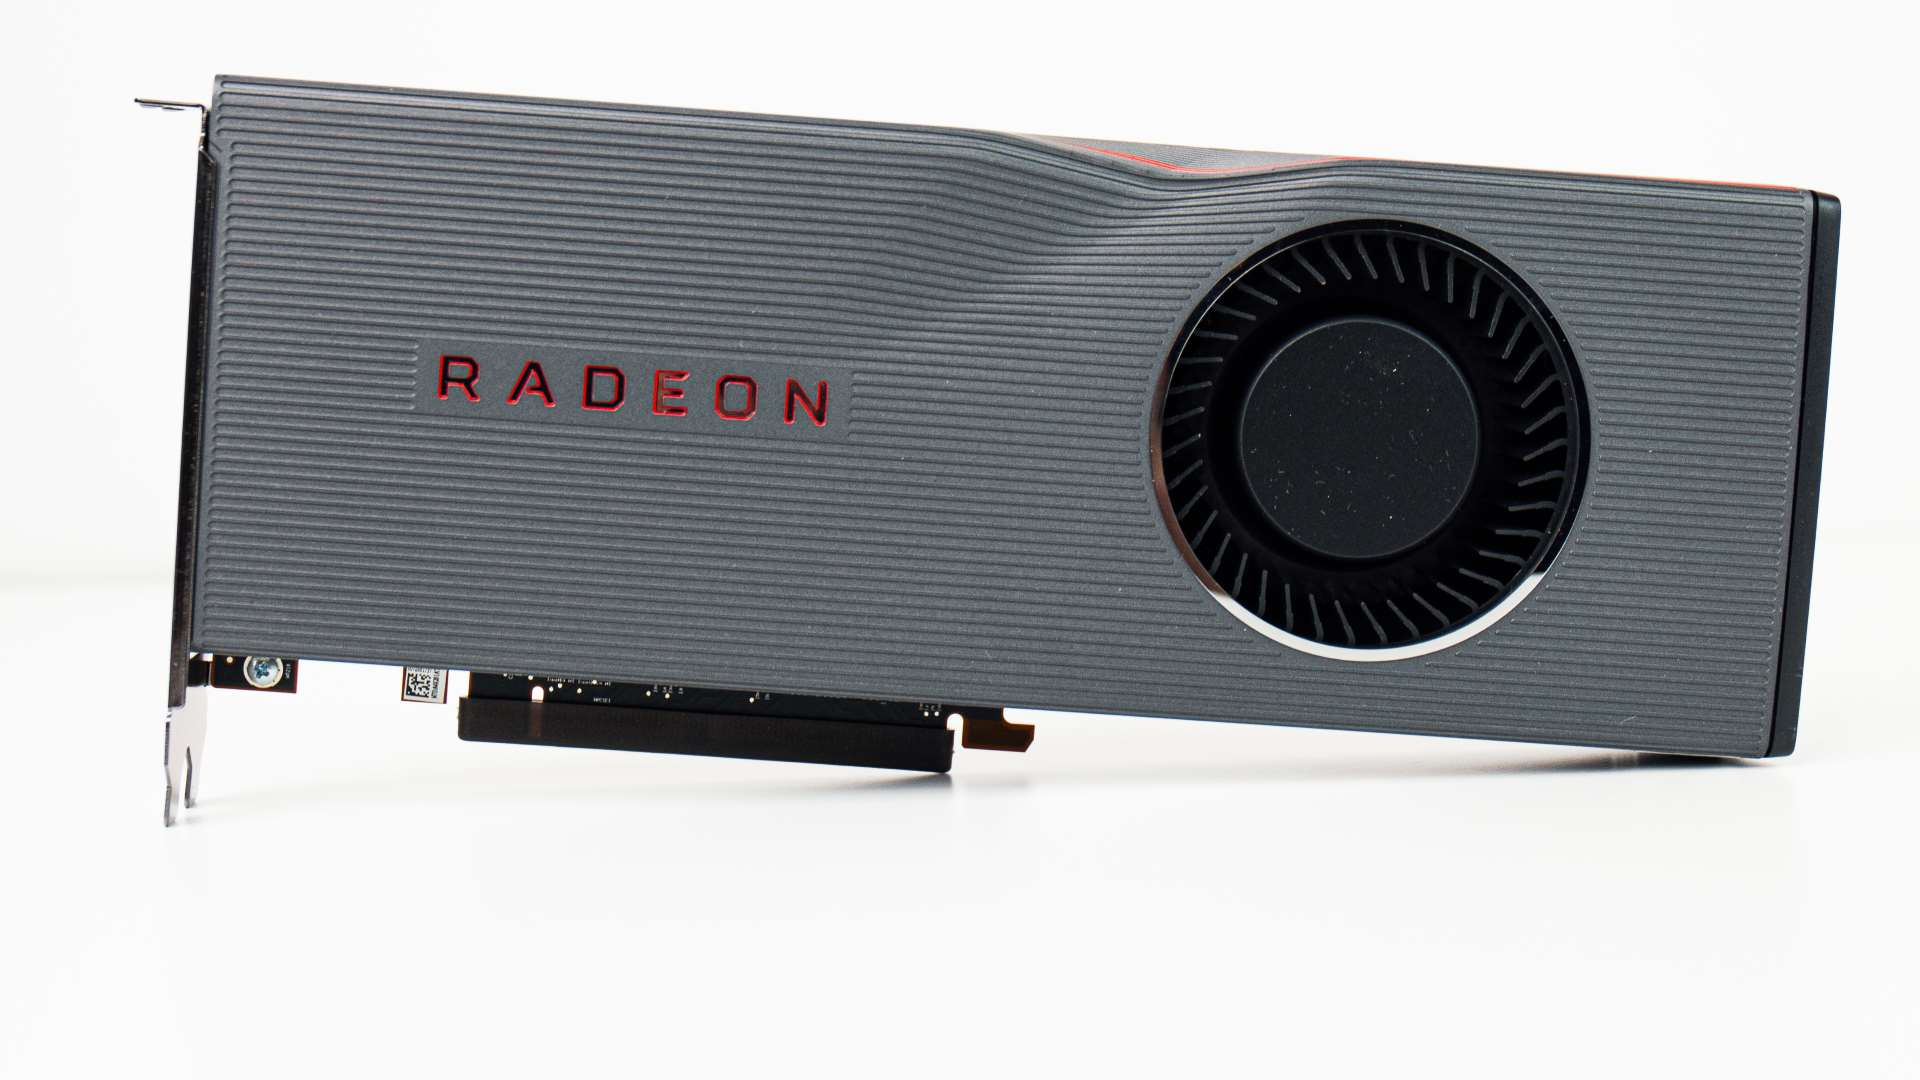 Amd Radeon Rx 5700 Xt Review Too Close To The Rtx 2070 Super For Nvidia S Comfort Pcgamesn